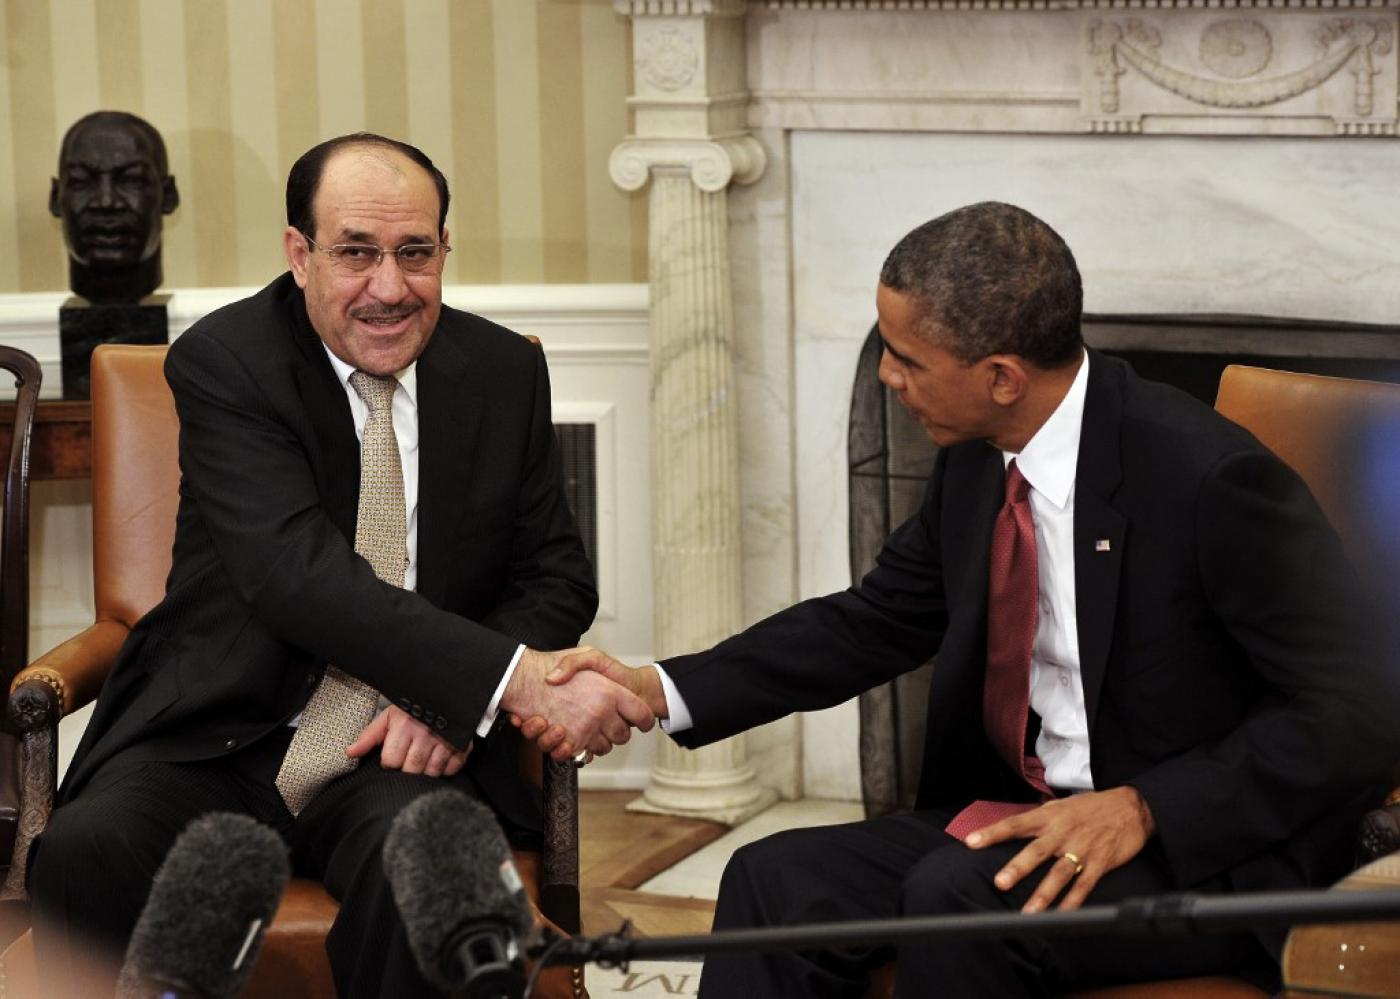 US President Barack Obama (R) shakes hands with Iraqi Prime Minister Nouri al-Maliki during a meeting at the White House in 2013 (AFP)